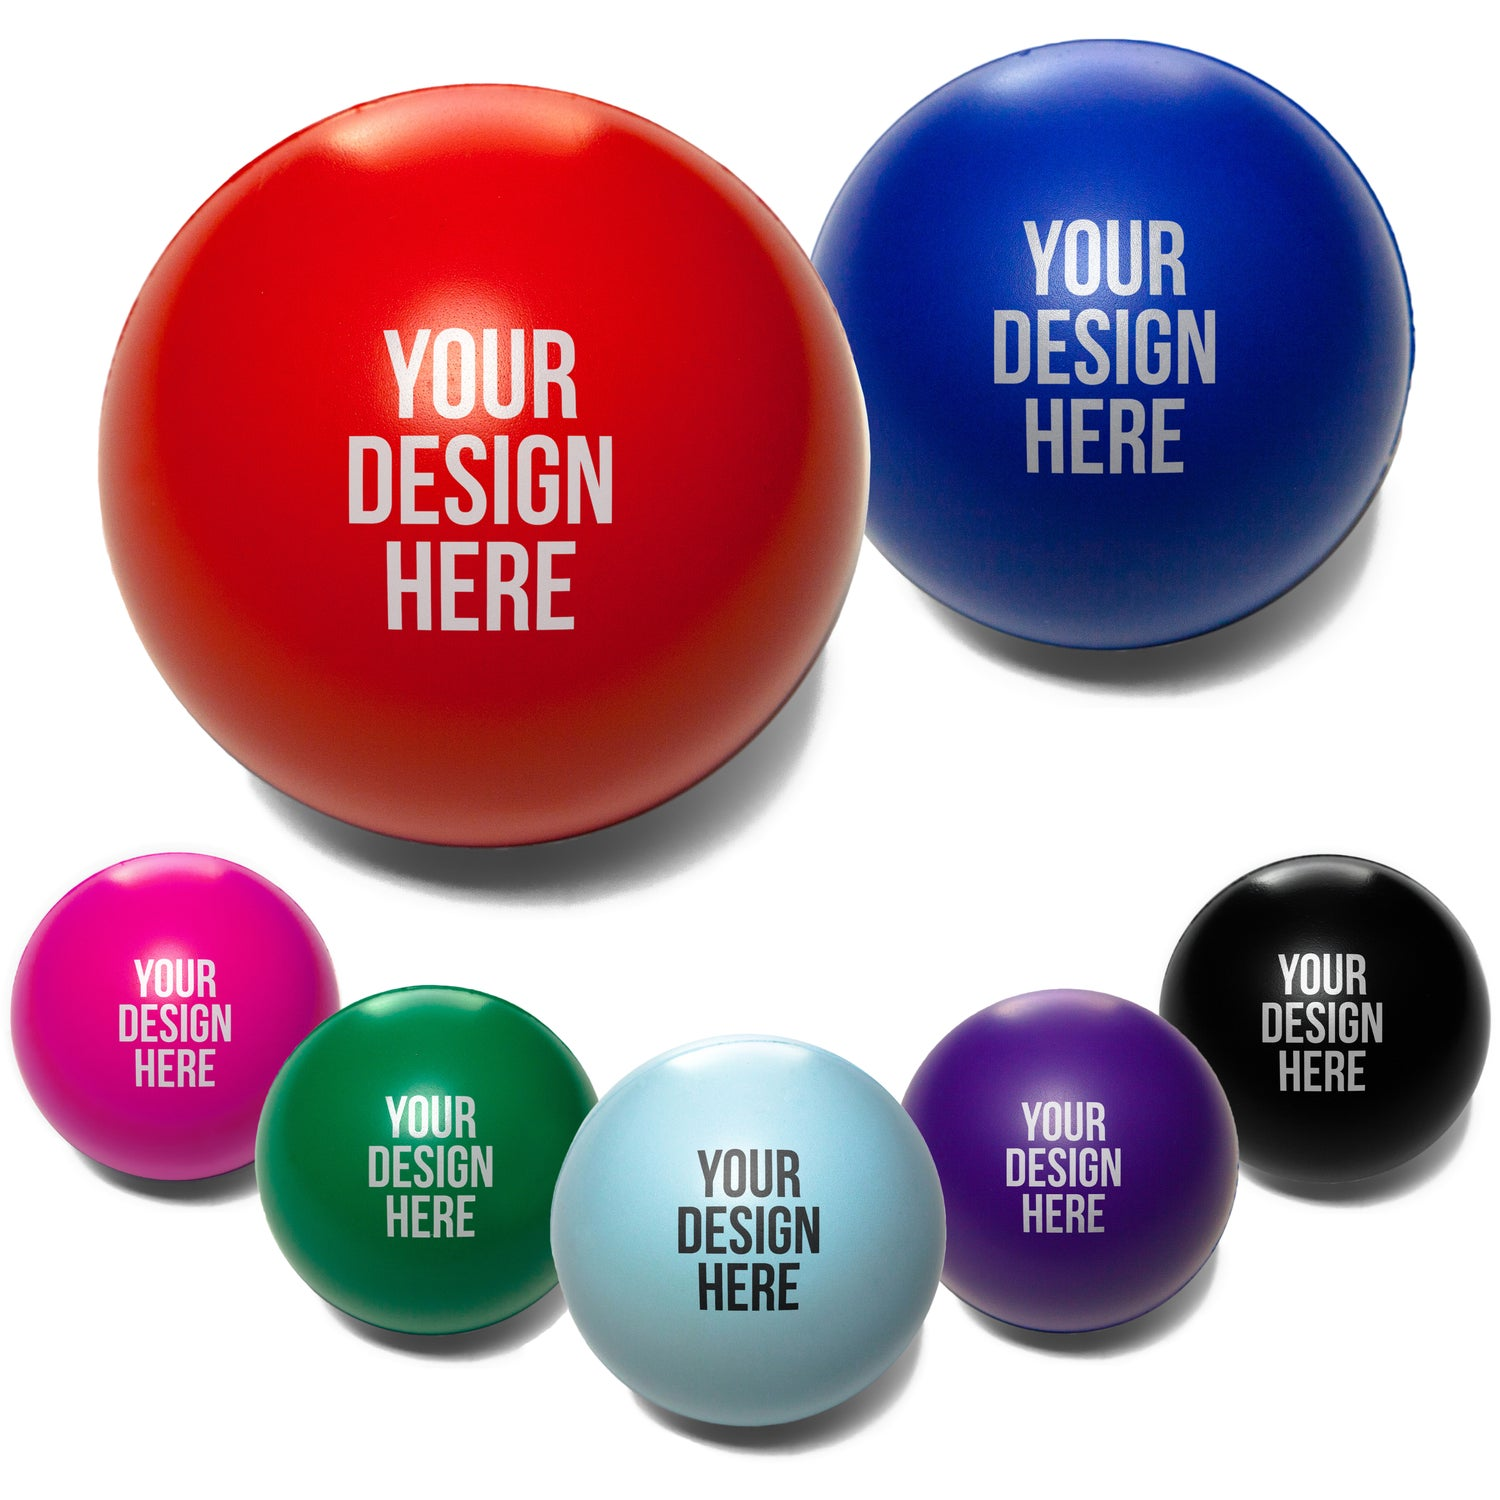 13d121d5b SQUEEZE ME for Savings on Custom Stress Balls